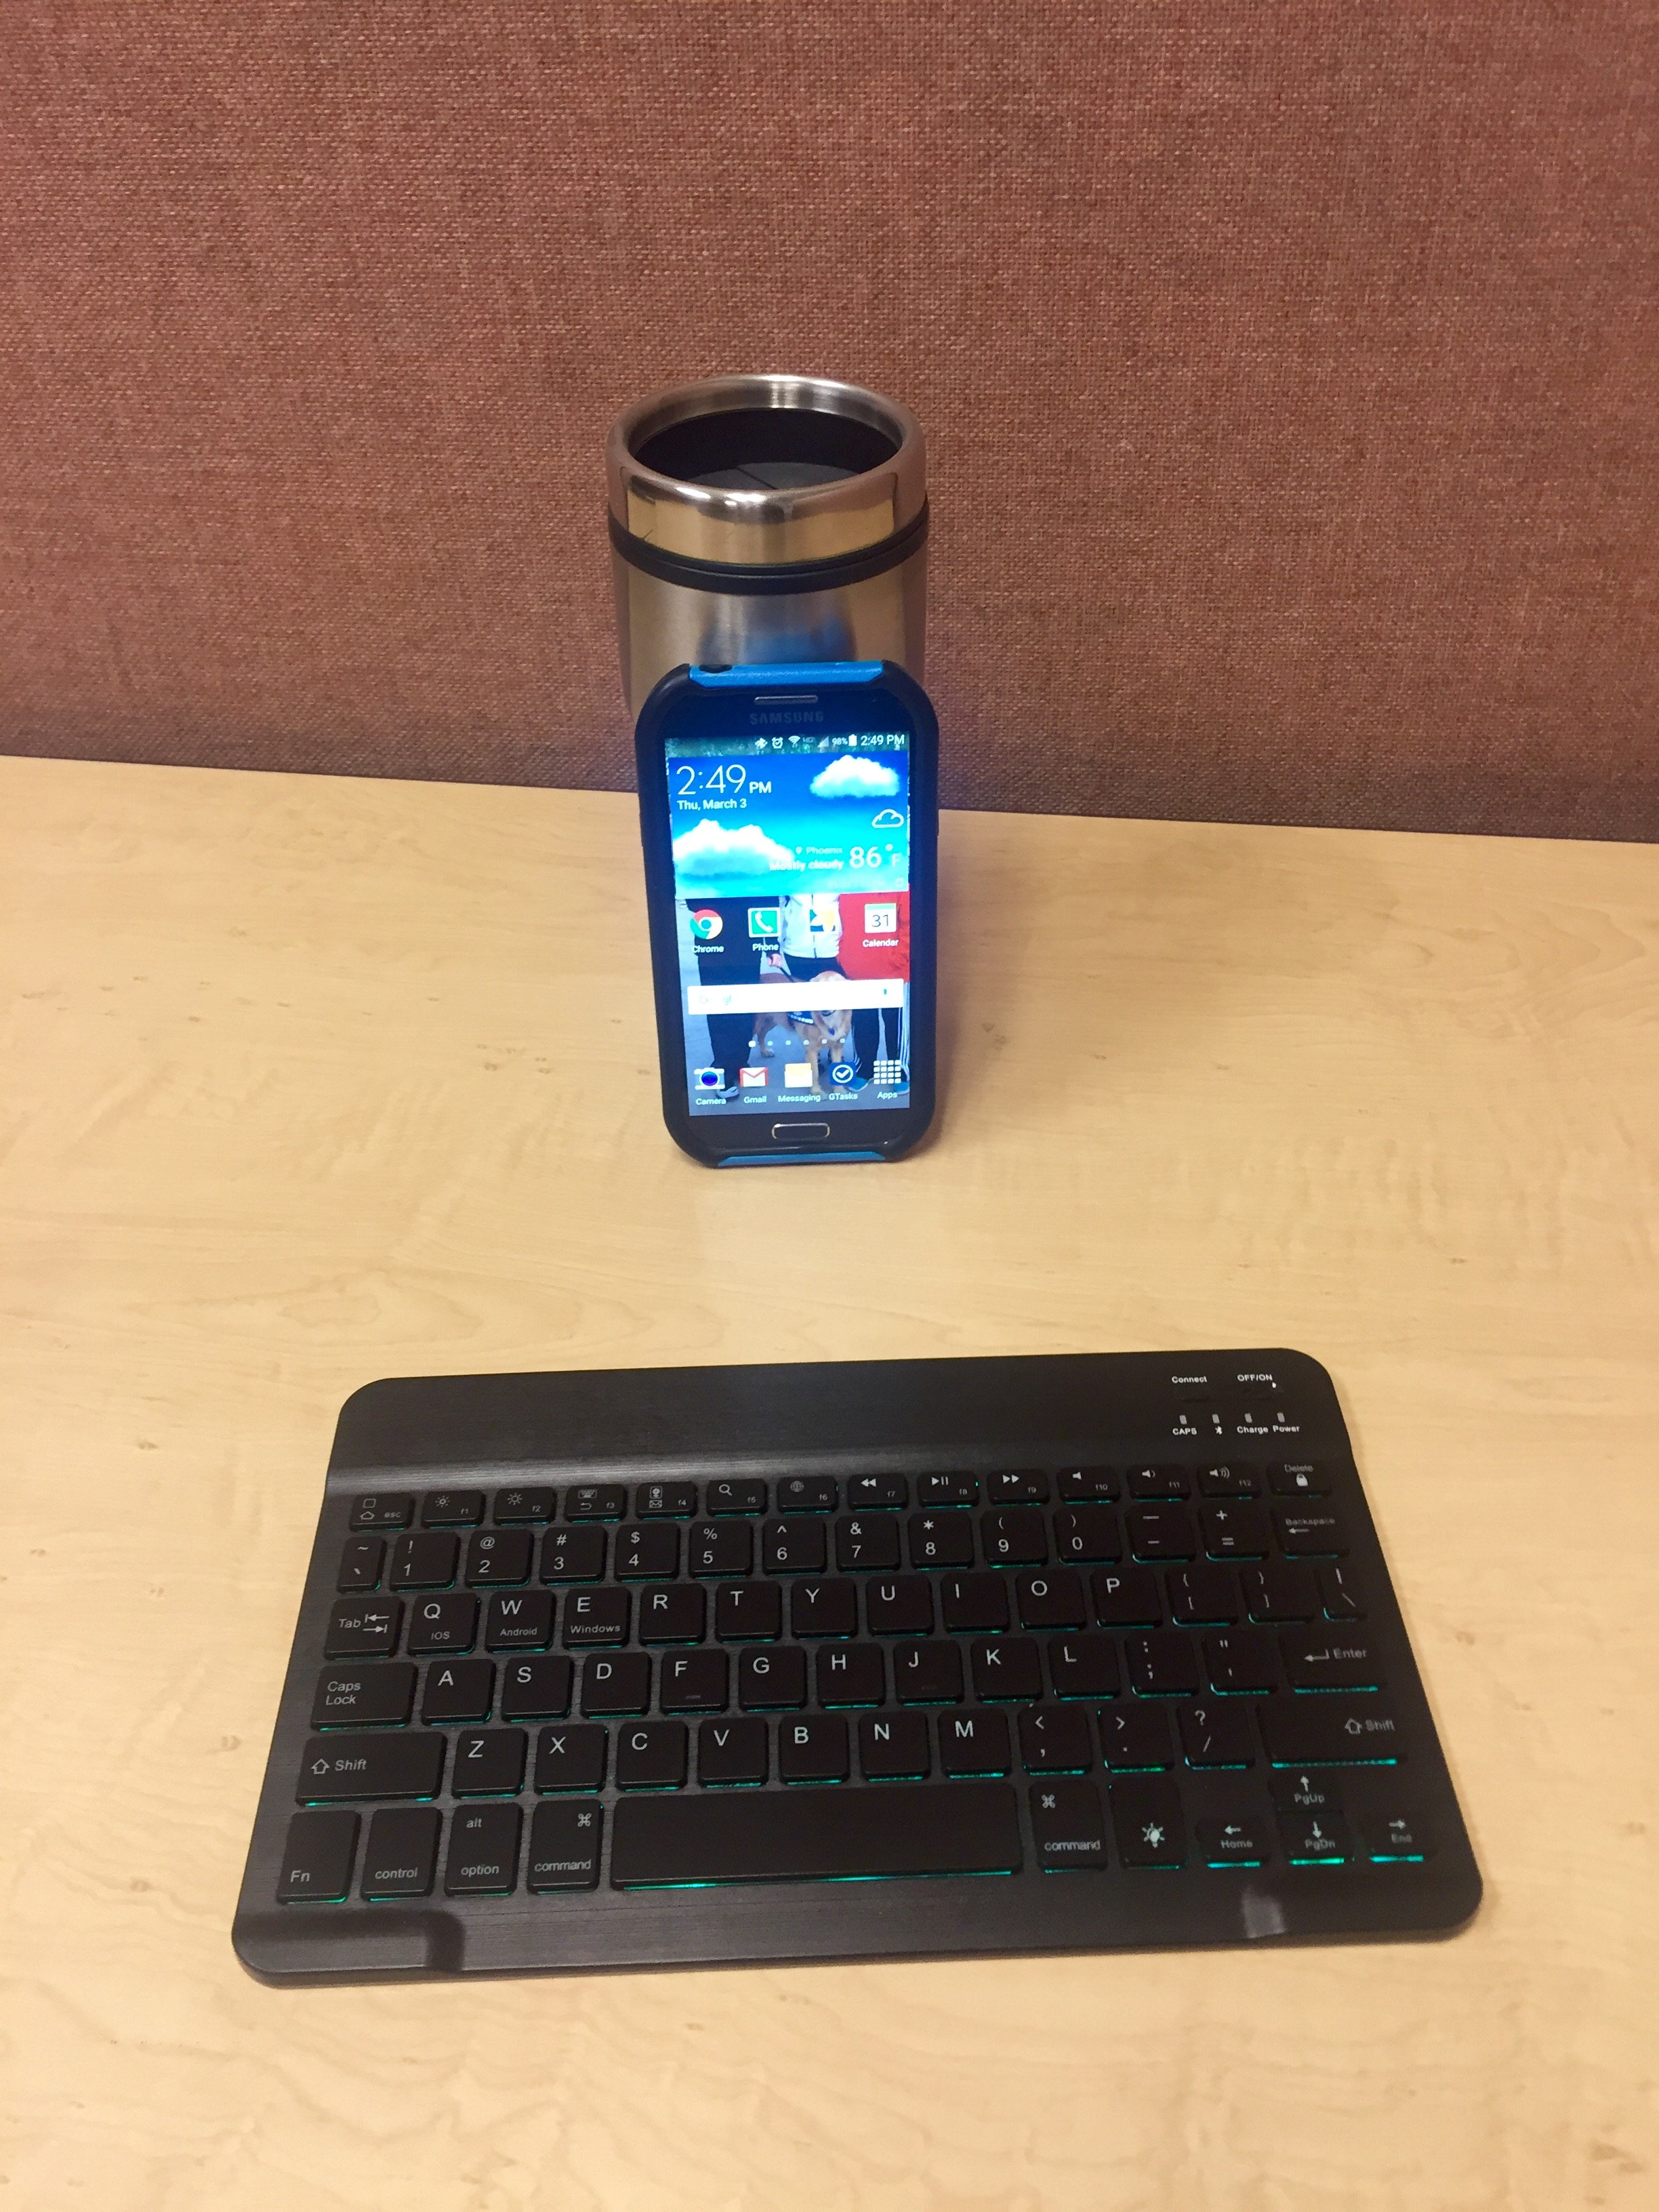 A smartphone with a bluetooth-keyboard makes for an ultra portable writing setup